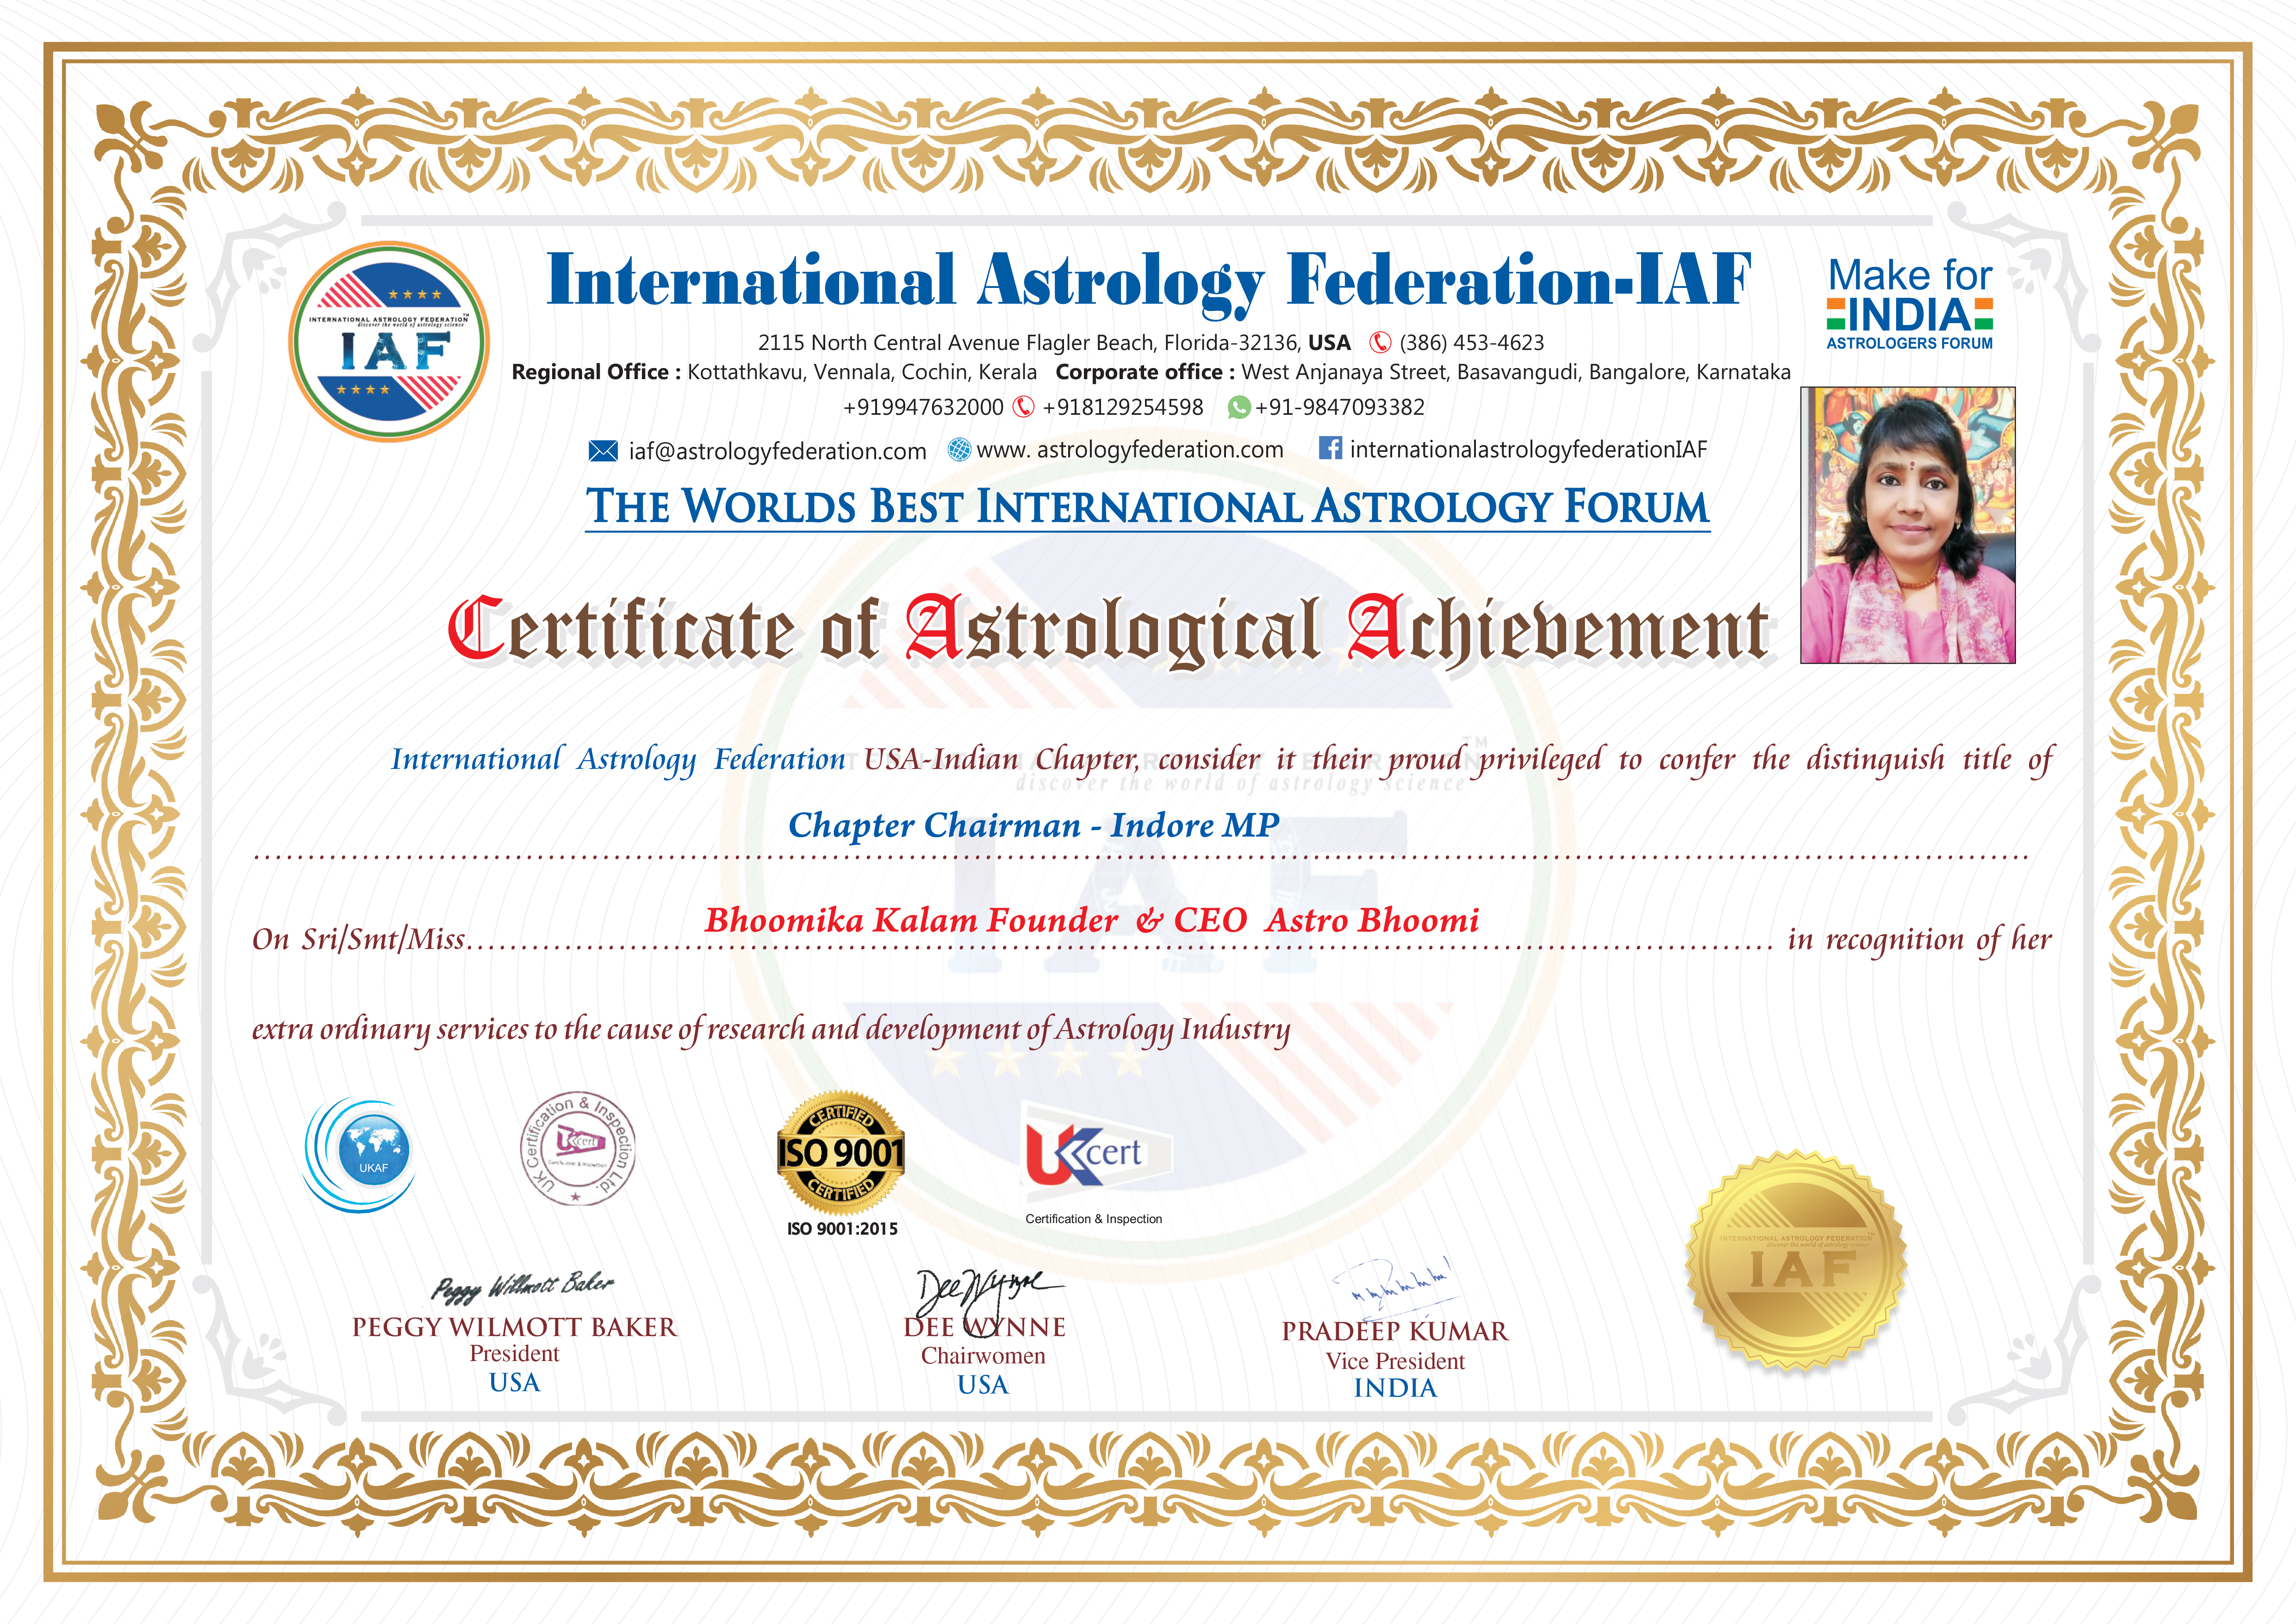 International Astrology Federation Certificate - Bhoomika Kalam